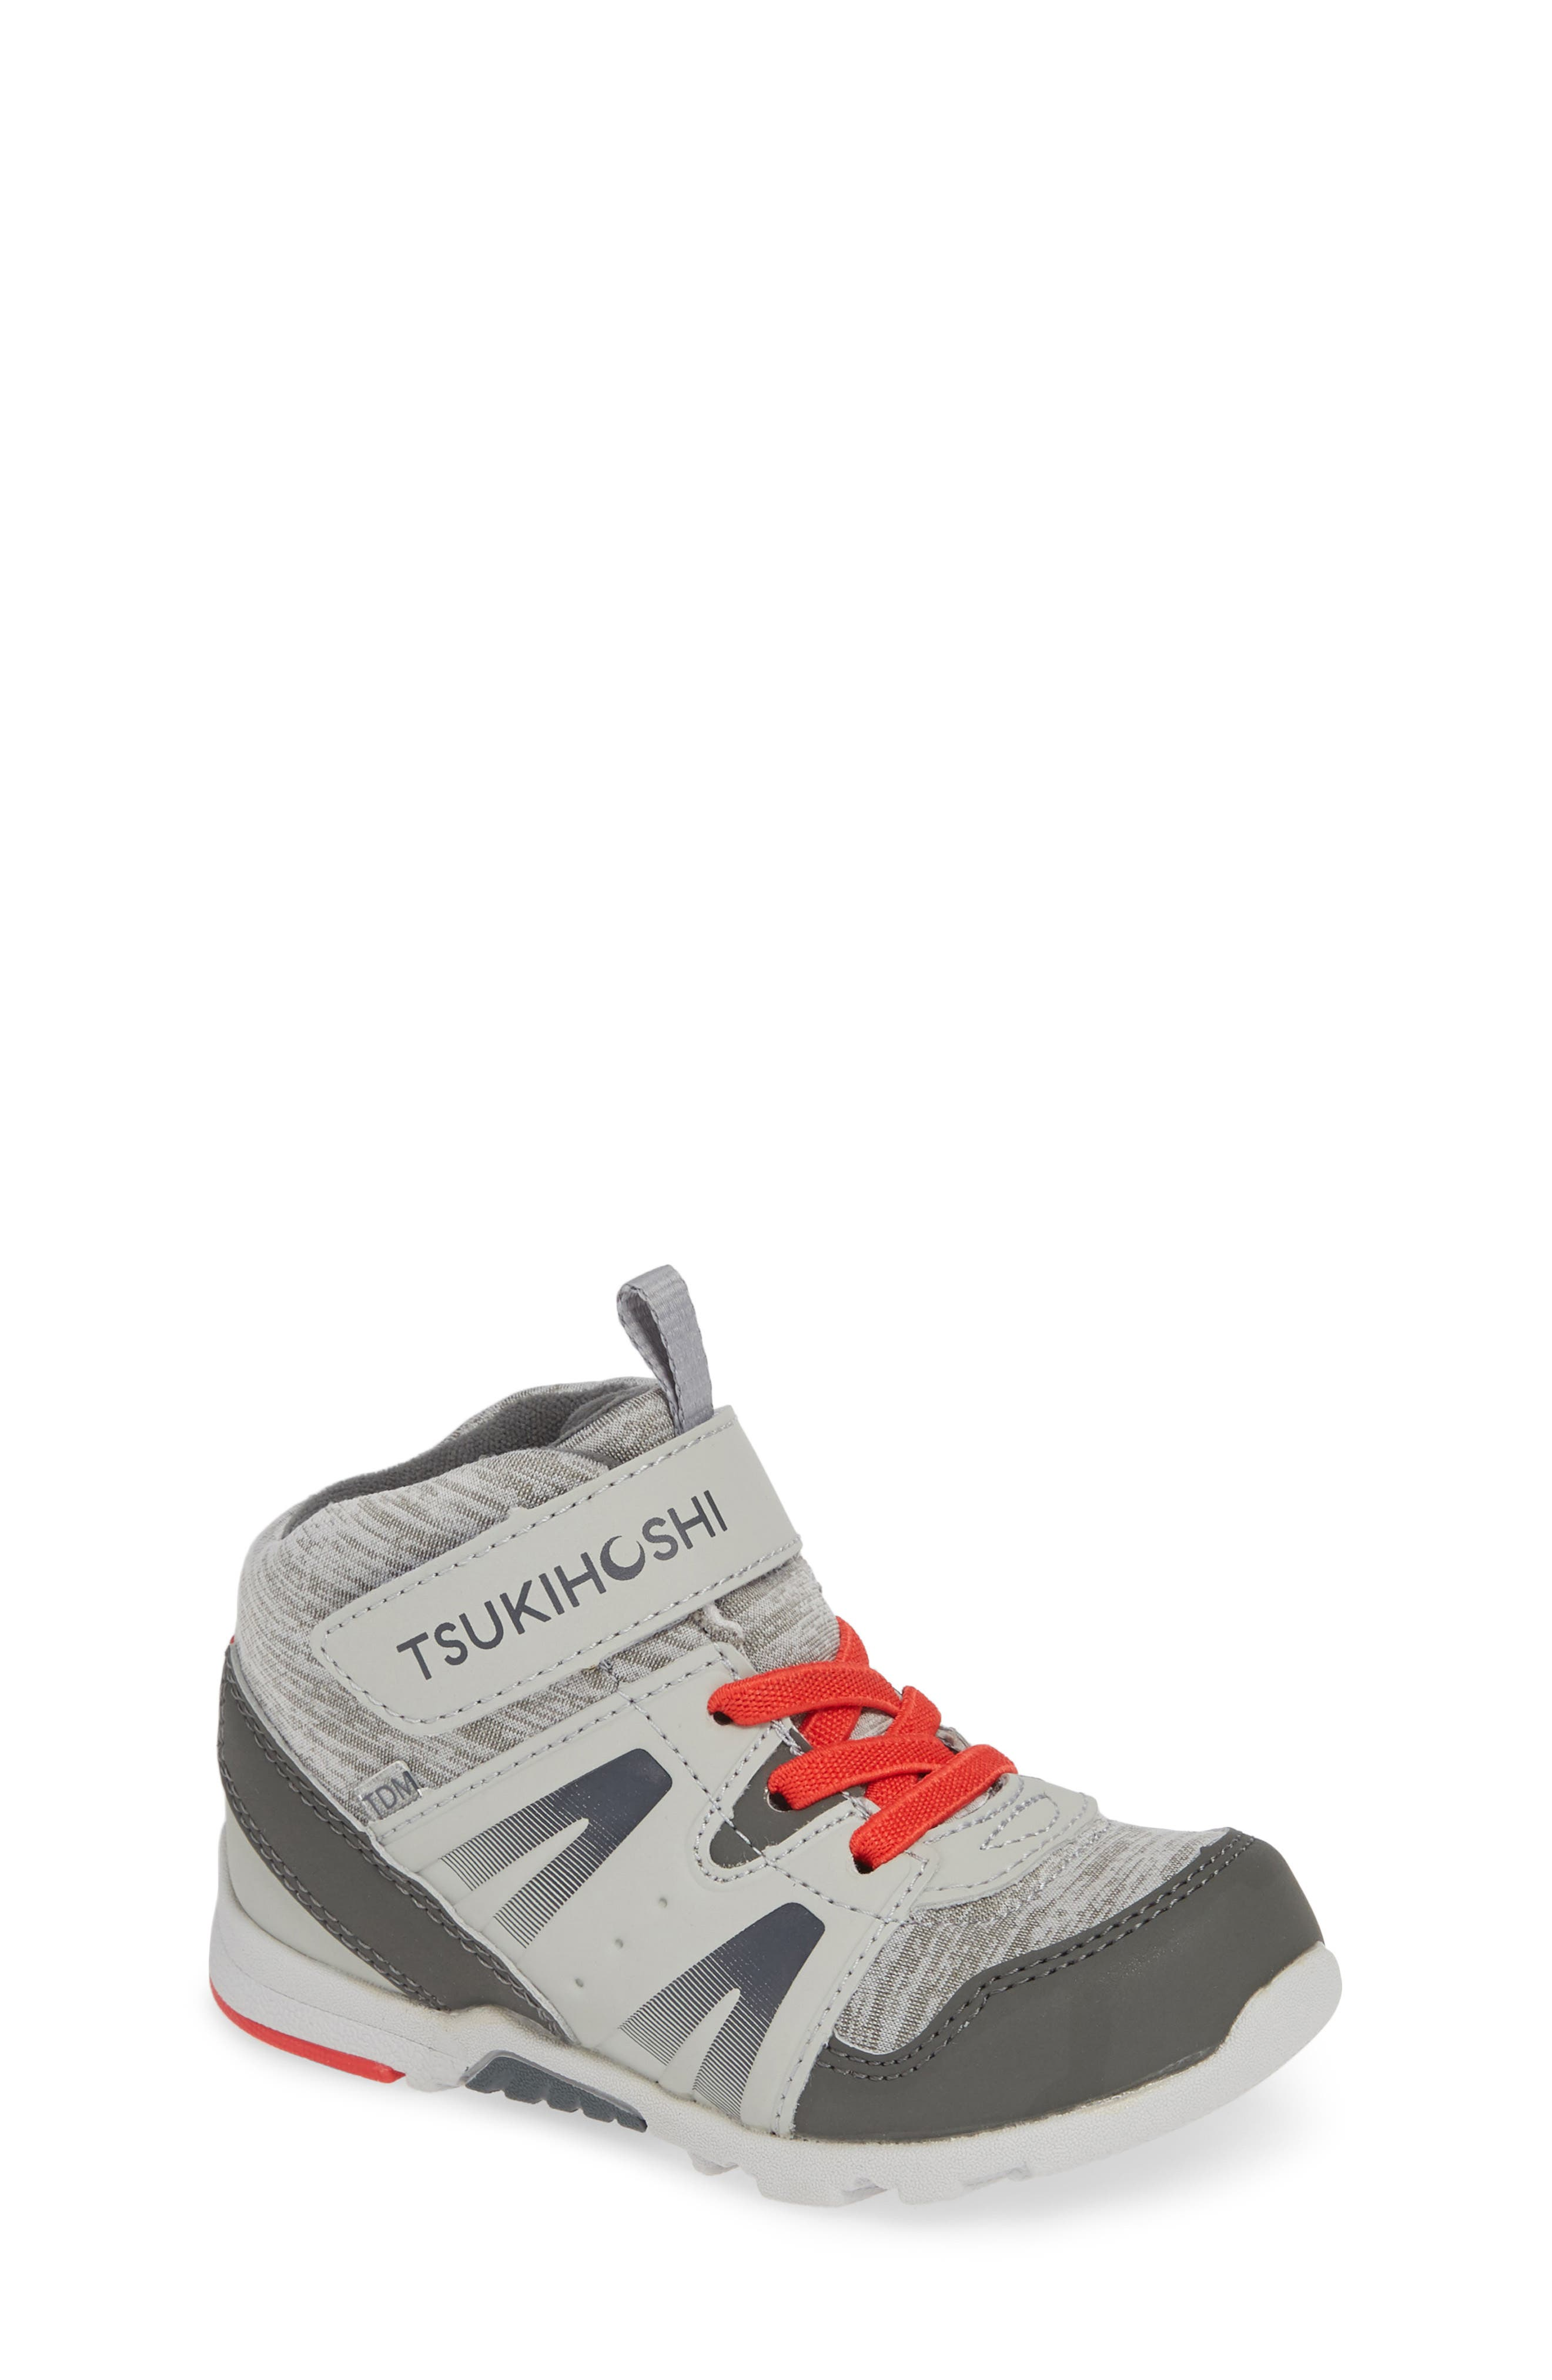 Made for exploring, this high-top sneaker is designed with a roomy toe box to allow little toes to wiggle, splay and stretch, just like they would barefoot. A firm heel provides stability and protects from overpronation, while the light and flexible sole promotes natural movement. Style Name: Tsukihoshi Hike Waterproof Sneaker (Little Kid & Big Kid). Style Number: 5674582. Available in stores.